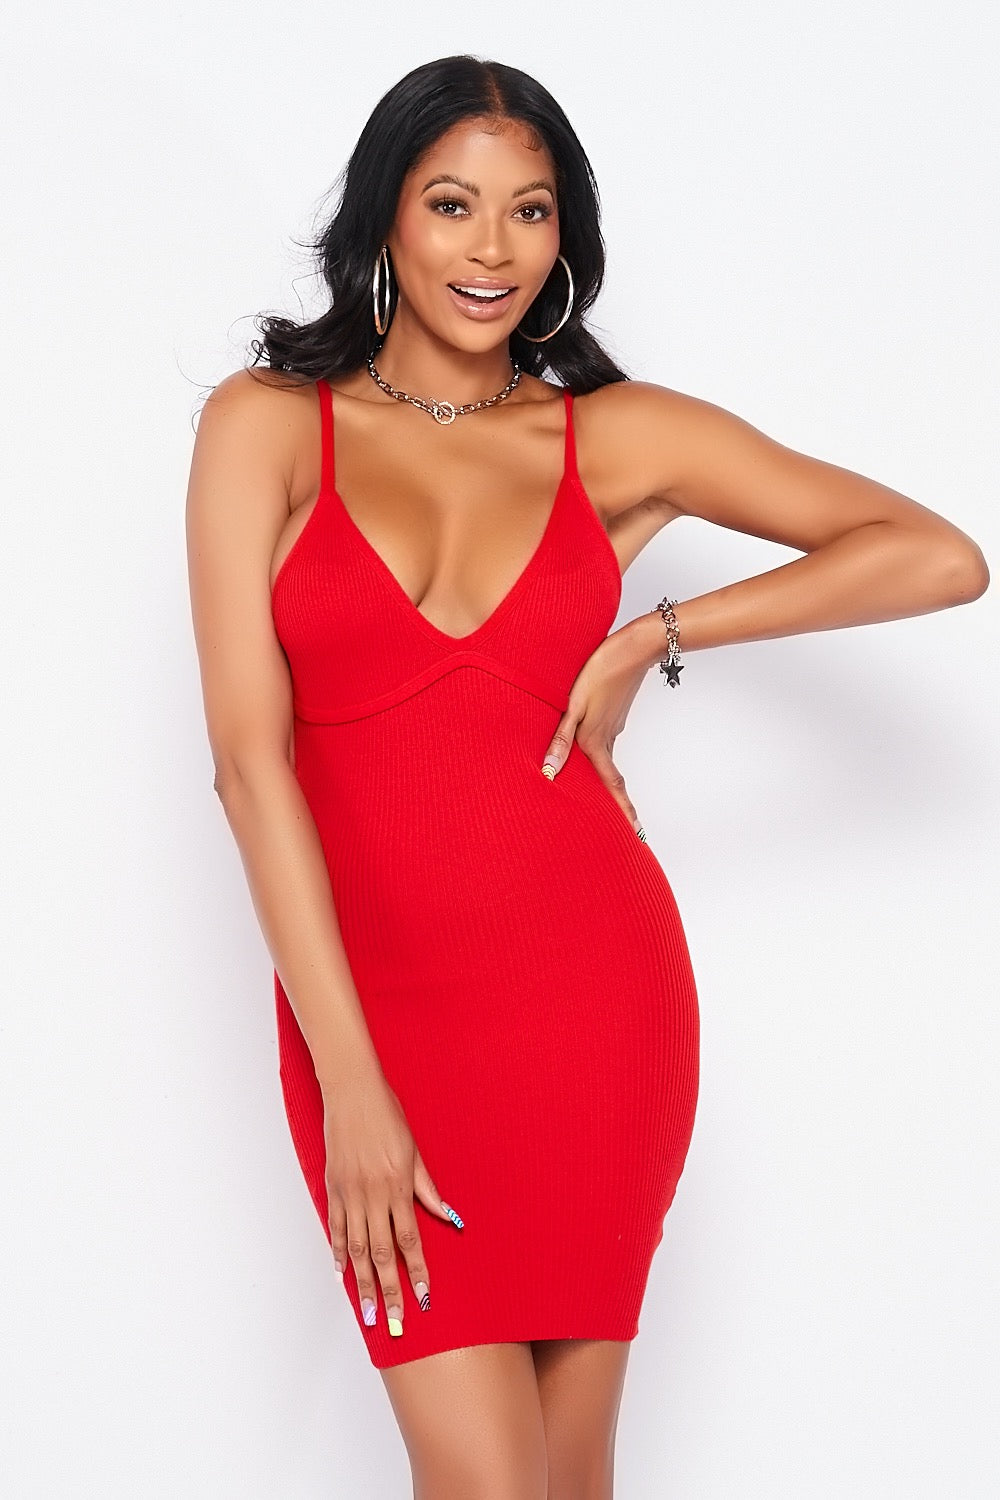 Soft Ribbed Spaghetti Strapped Bodycon Mini Dress in Red - Fashion House USA